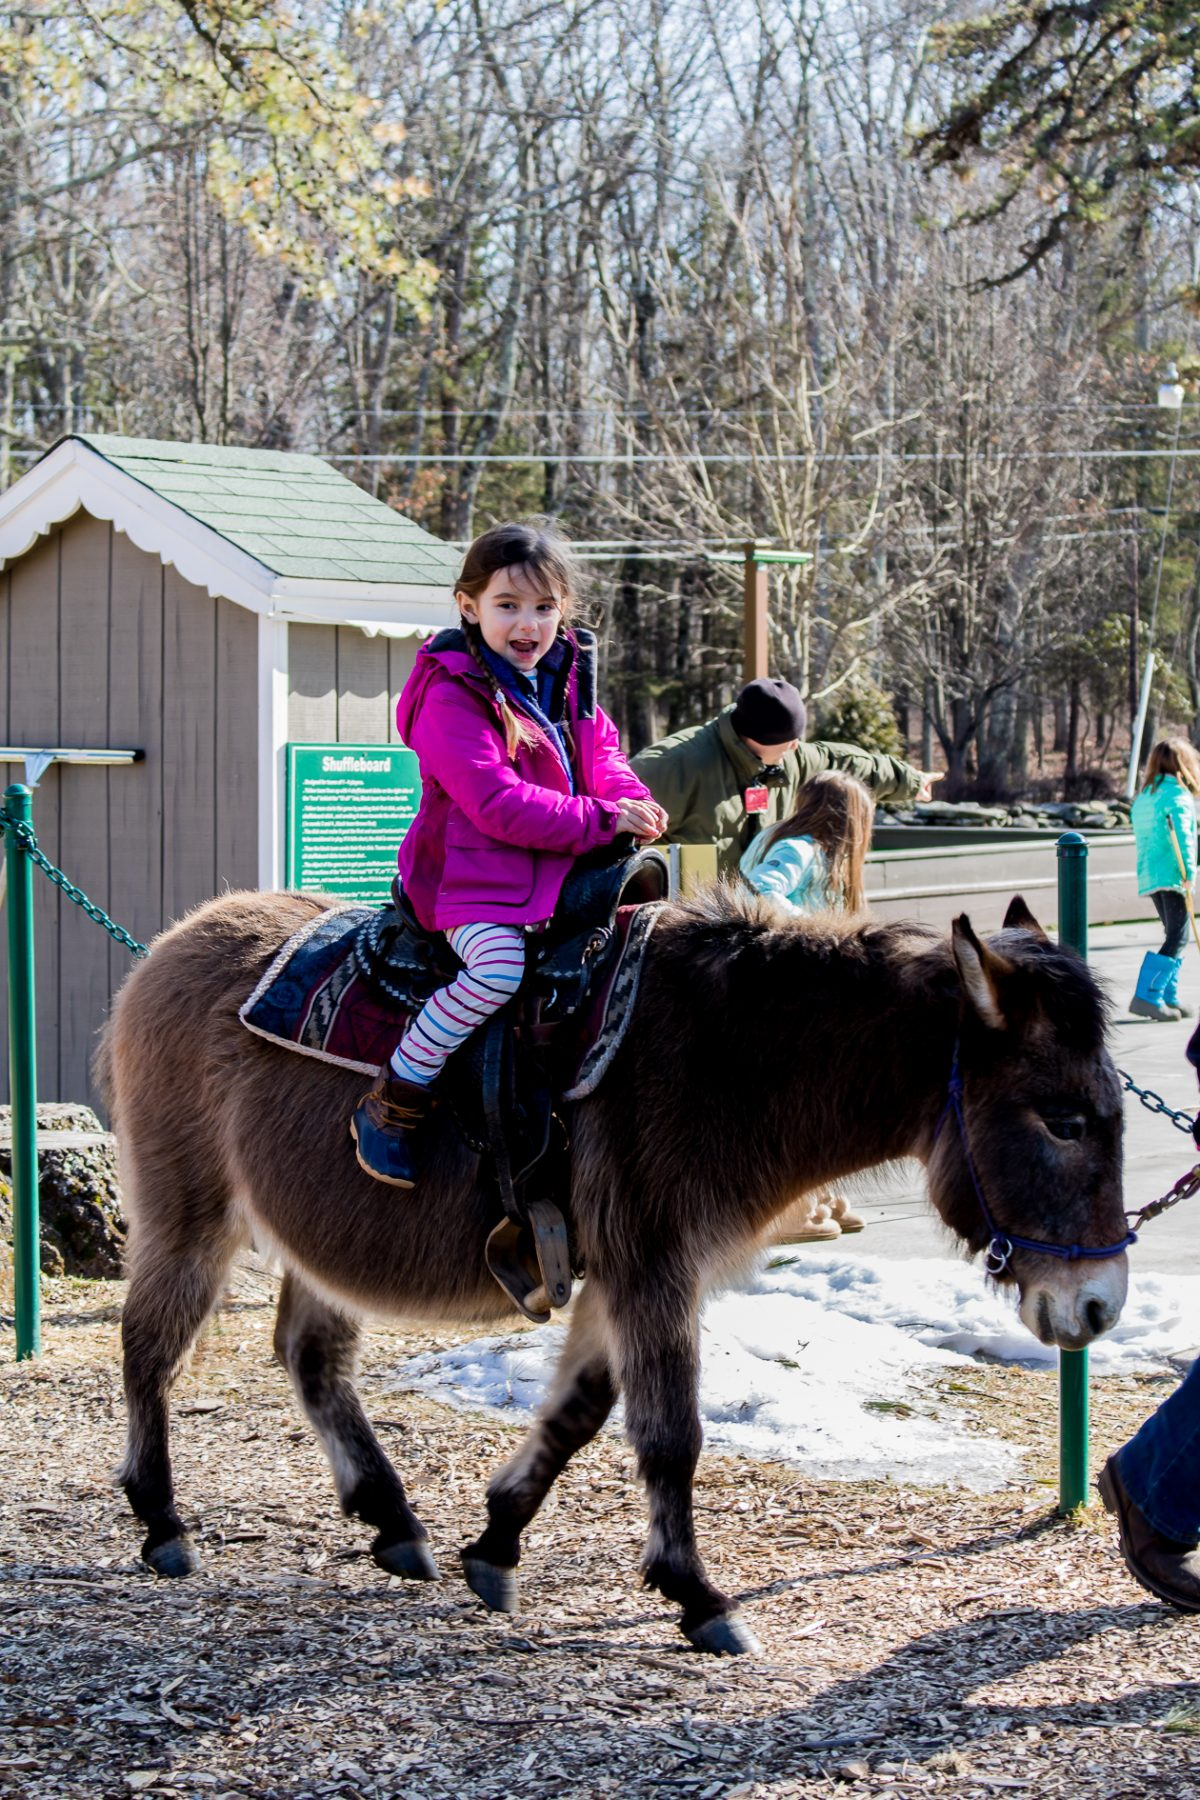 Little girl wearing pink jacket and striped pants riding a pony and smiling at Woodloch Pines Resort